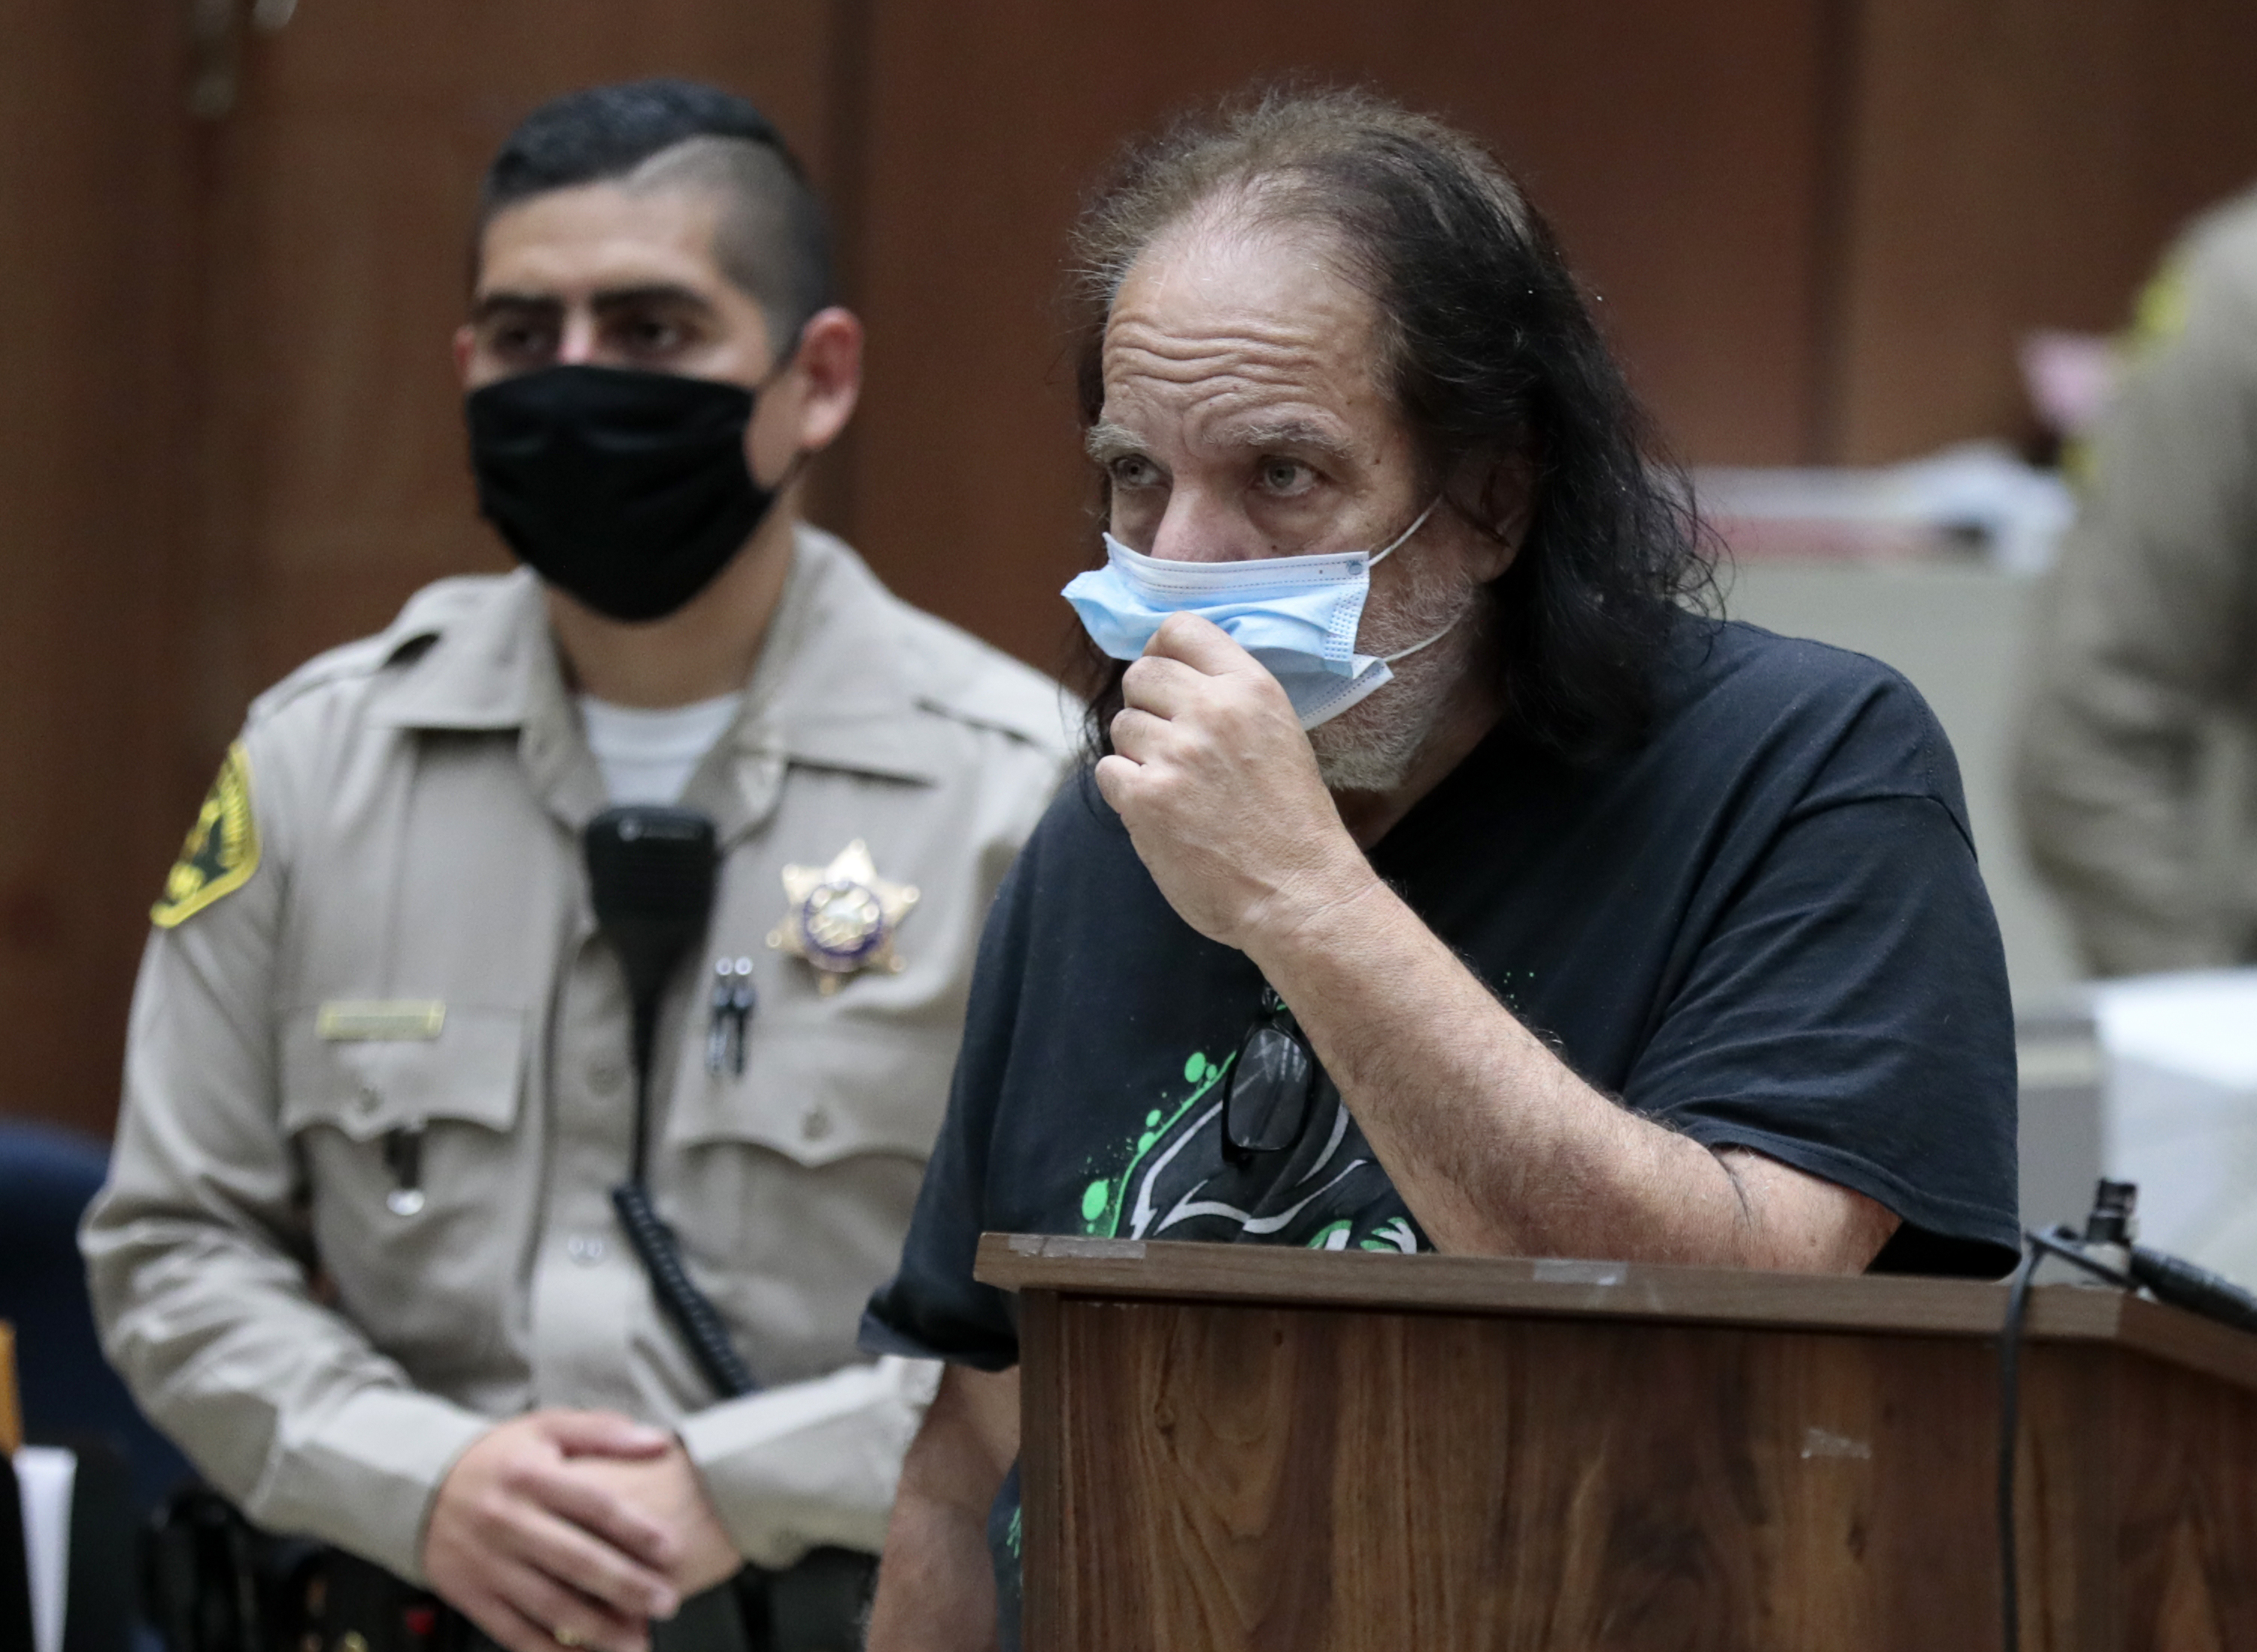 Adult film star Ron Jeremy makes his first court appearance Tuesday, June 23, 2020, in Los Angeles. Los Angeles County prosecutors say Jeremy has been charged with raping three women and sexually assaulting a fourth. (Robert Gauthier/Los Angeles Times via AP, Pool)